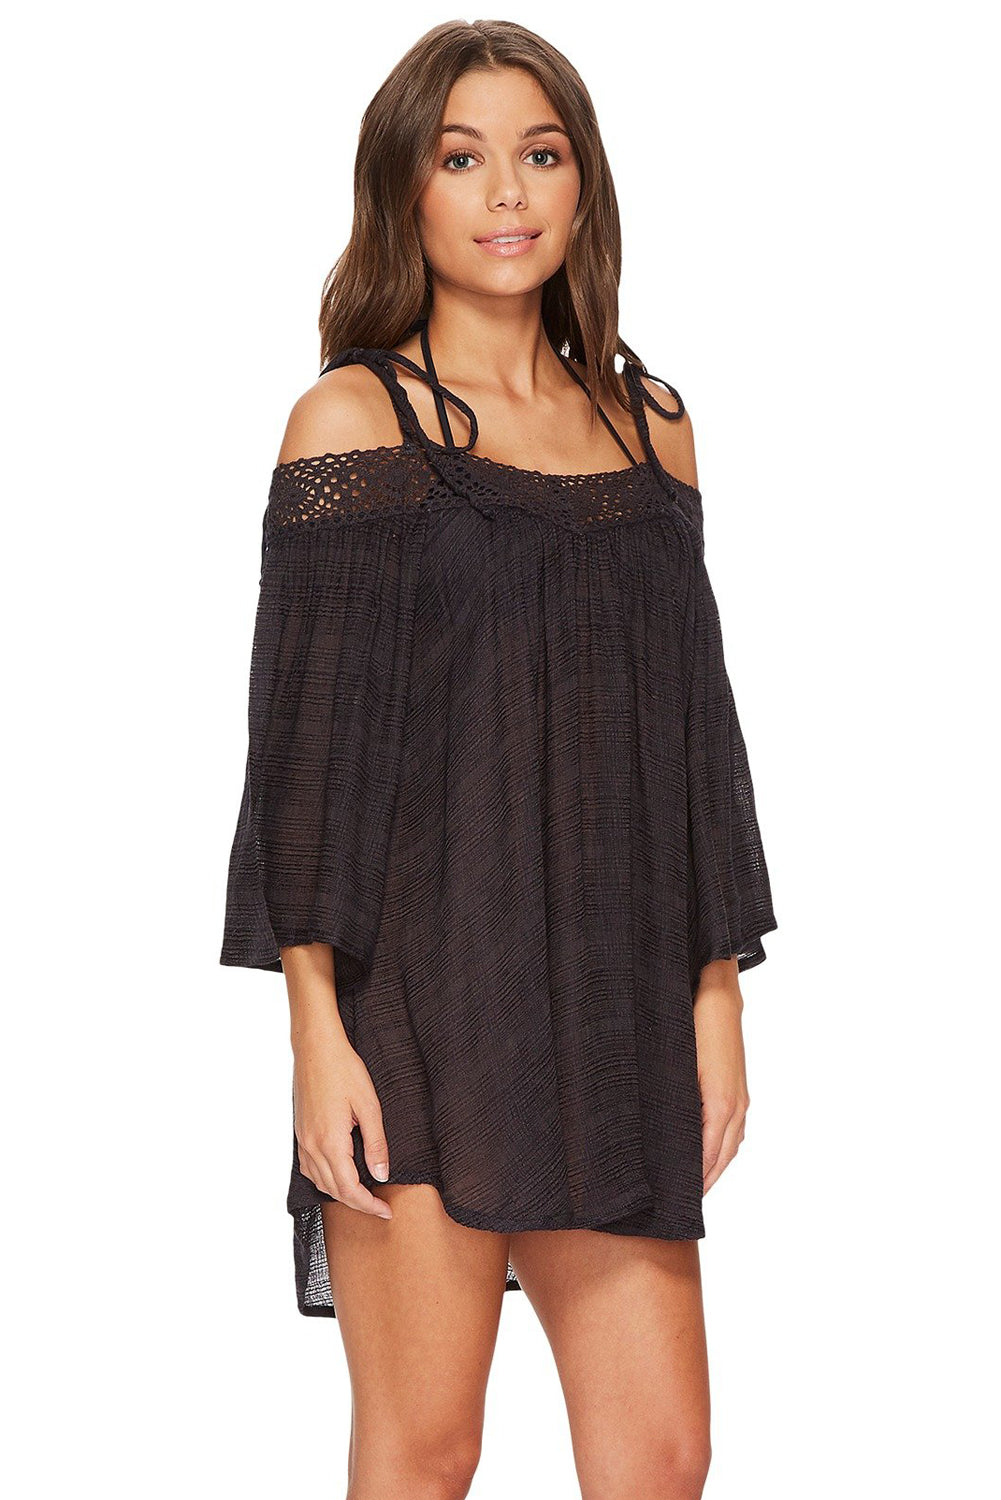 Her Black Summer Breeze Cover-up Crochet Off-the-shoulder Beachwear